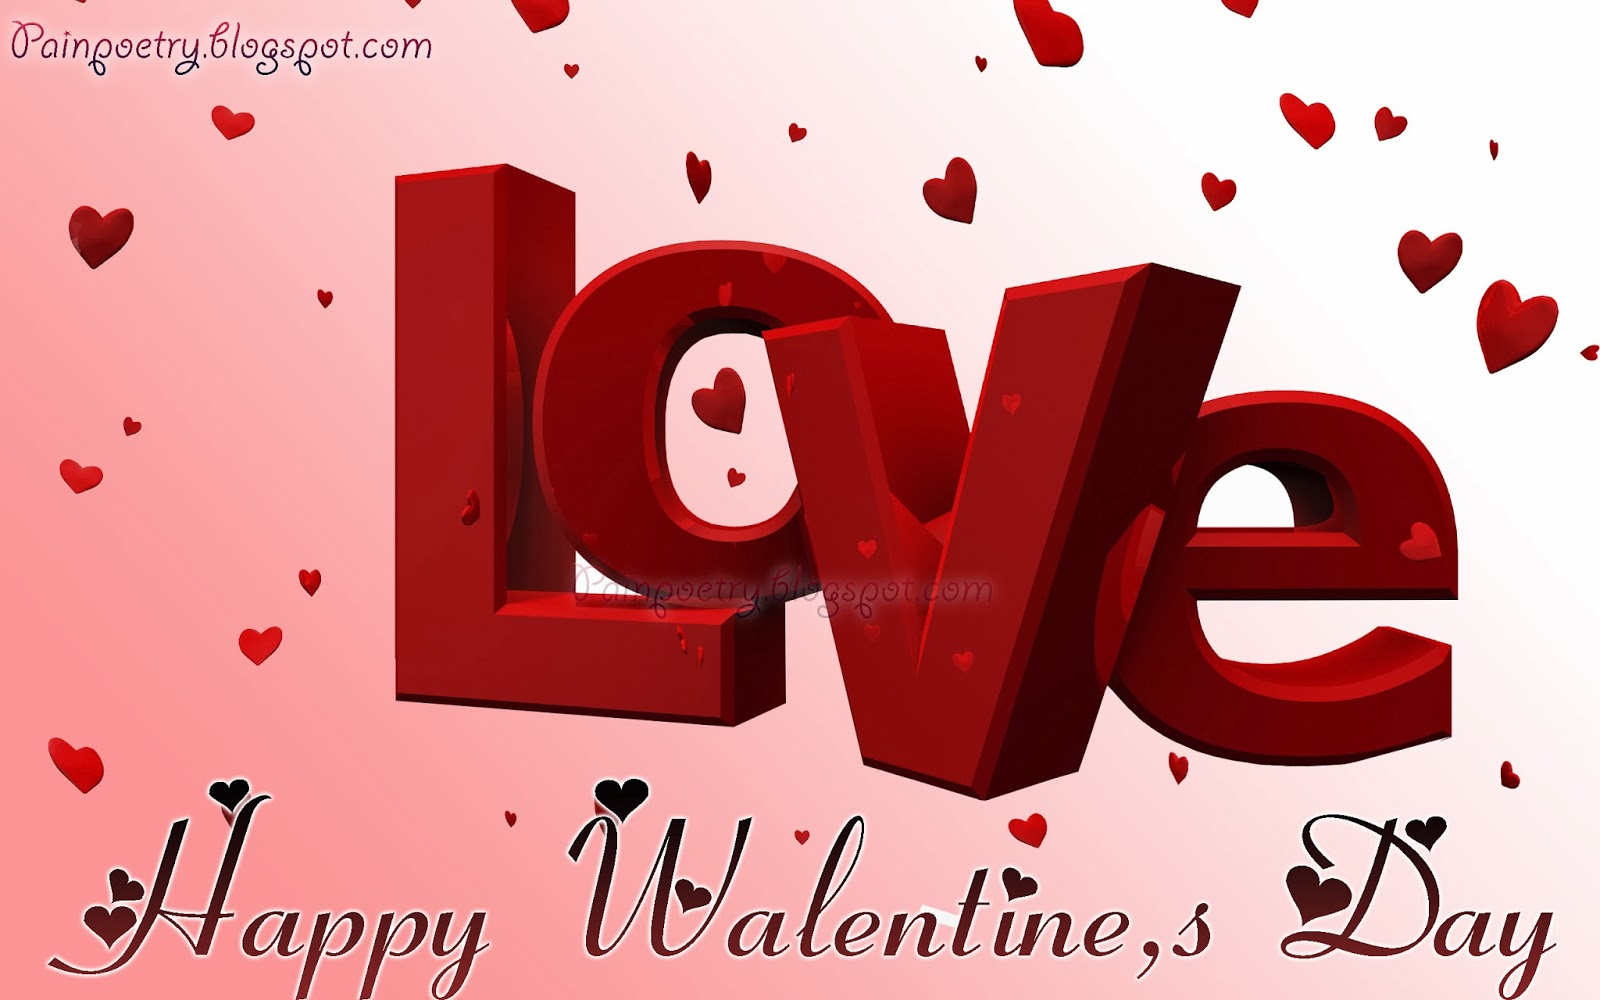 Happy-Valentine,s-Day-Wishes-Love-Logo-Image-Scene-HD